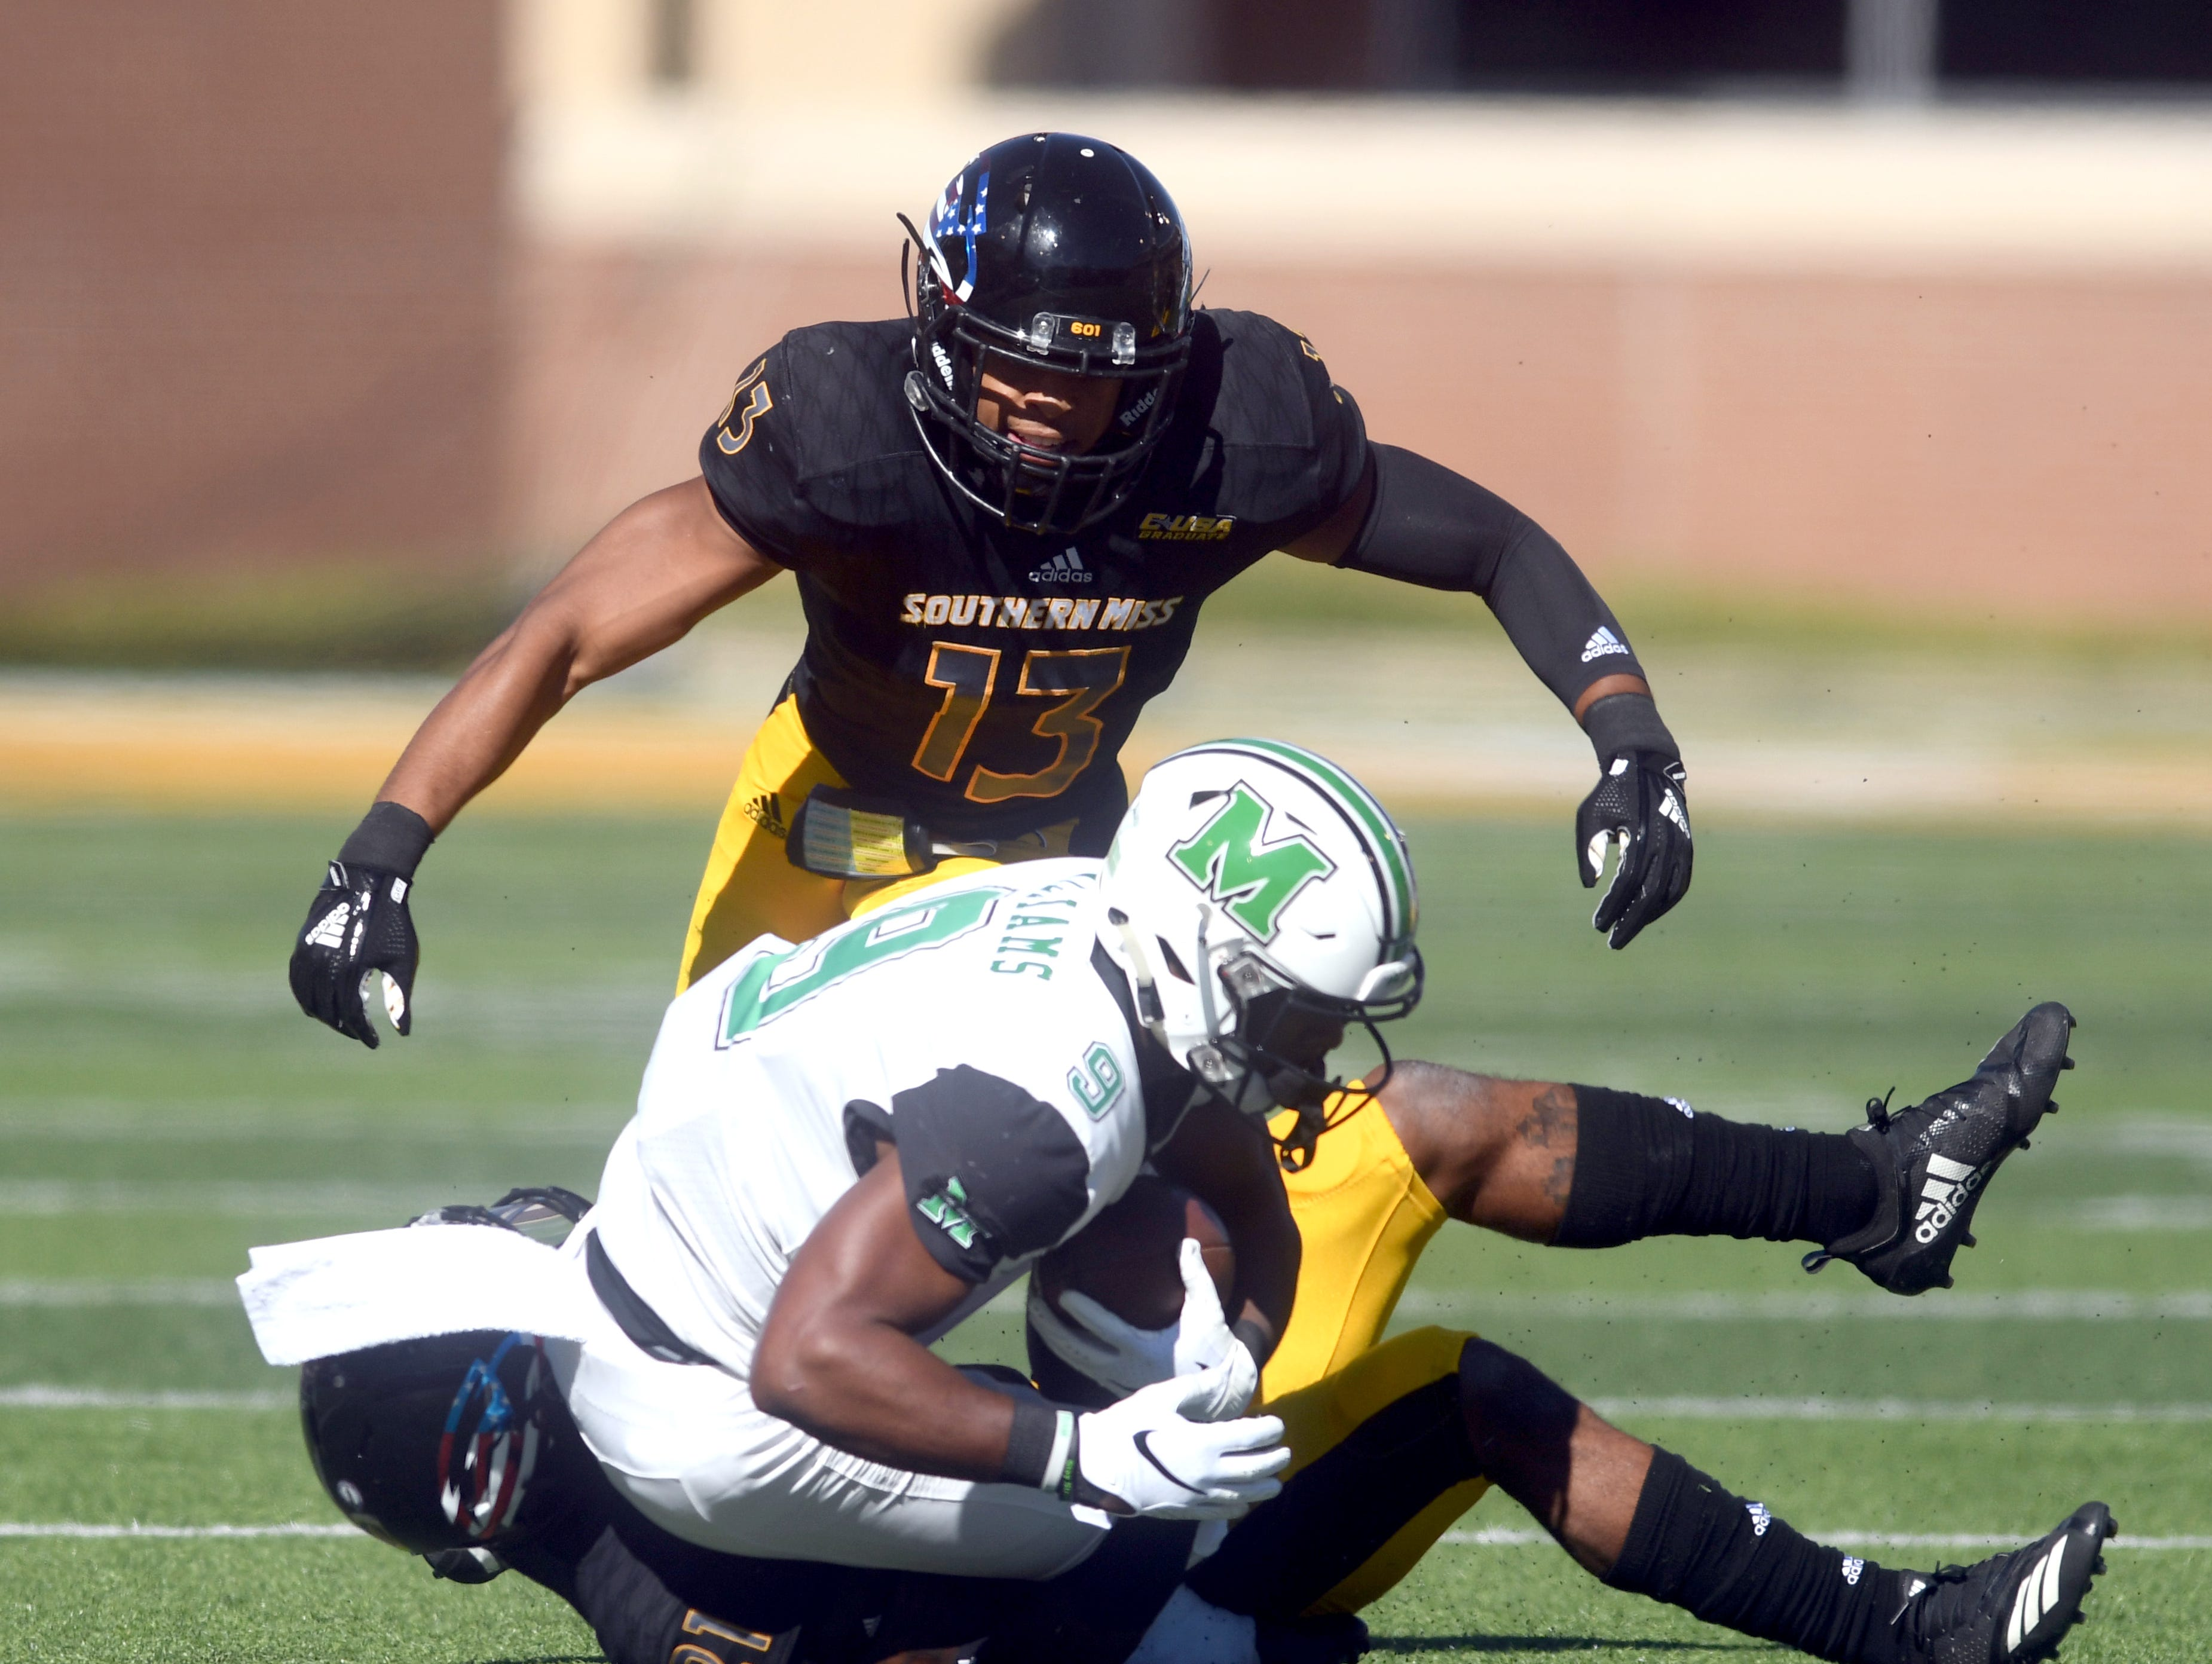 Southern Miss defensive backs Rachuan Mitchell (21) and Picasso Nelson Jr. (13) make a tackle in a game against Marshall at M.M. Roberts Stadium on Saturday, November 3, 2018.